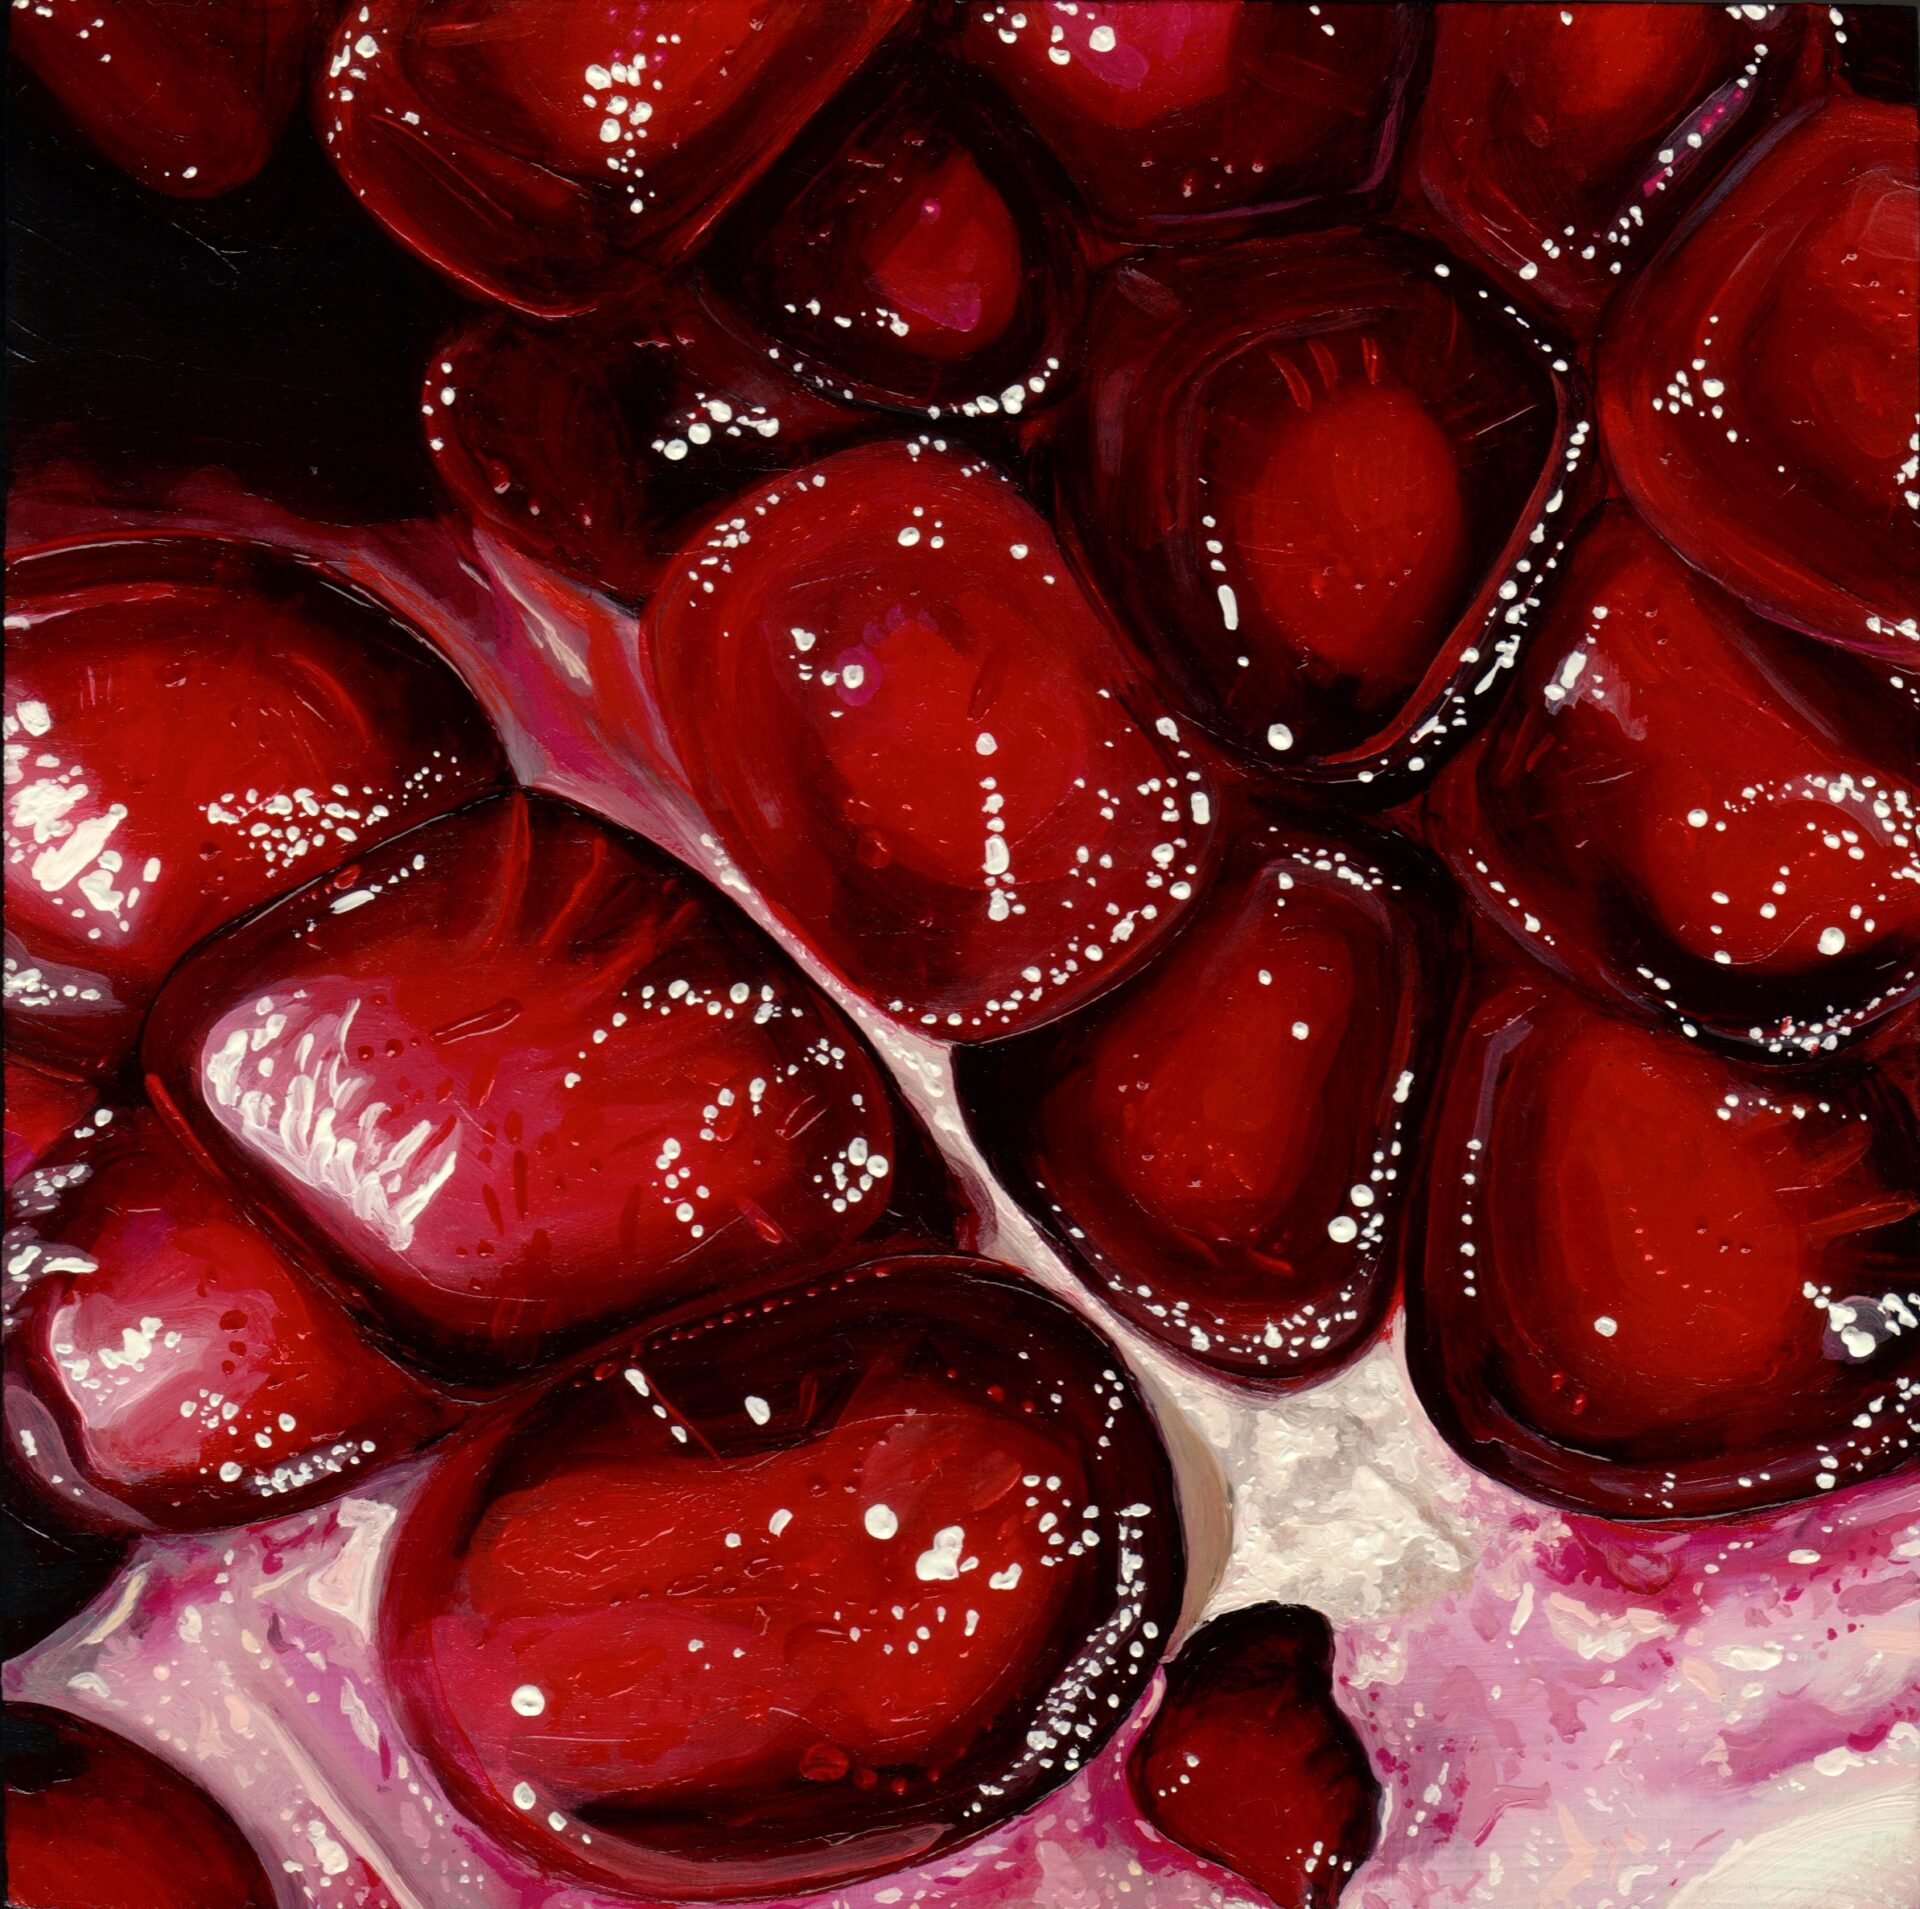 "Angela Faustina, Pomegranate XXVII, 2016. Oil on cradled painting panel, 8"" by 8"". Available for purchase through Gallery43, Roswell, GA."